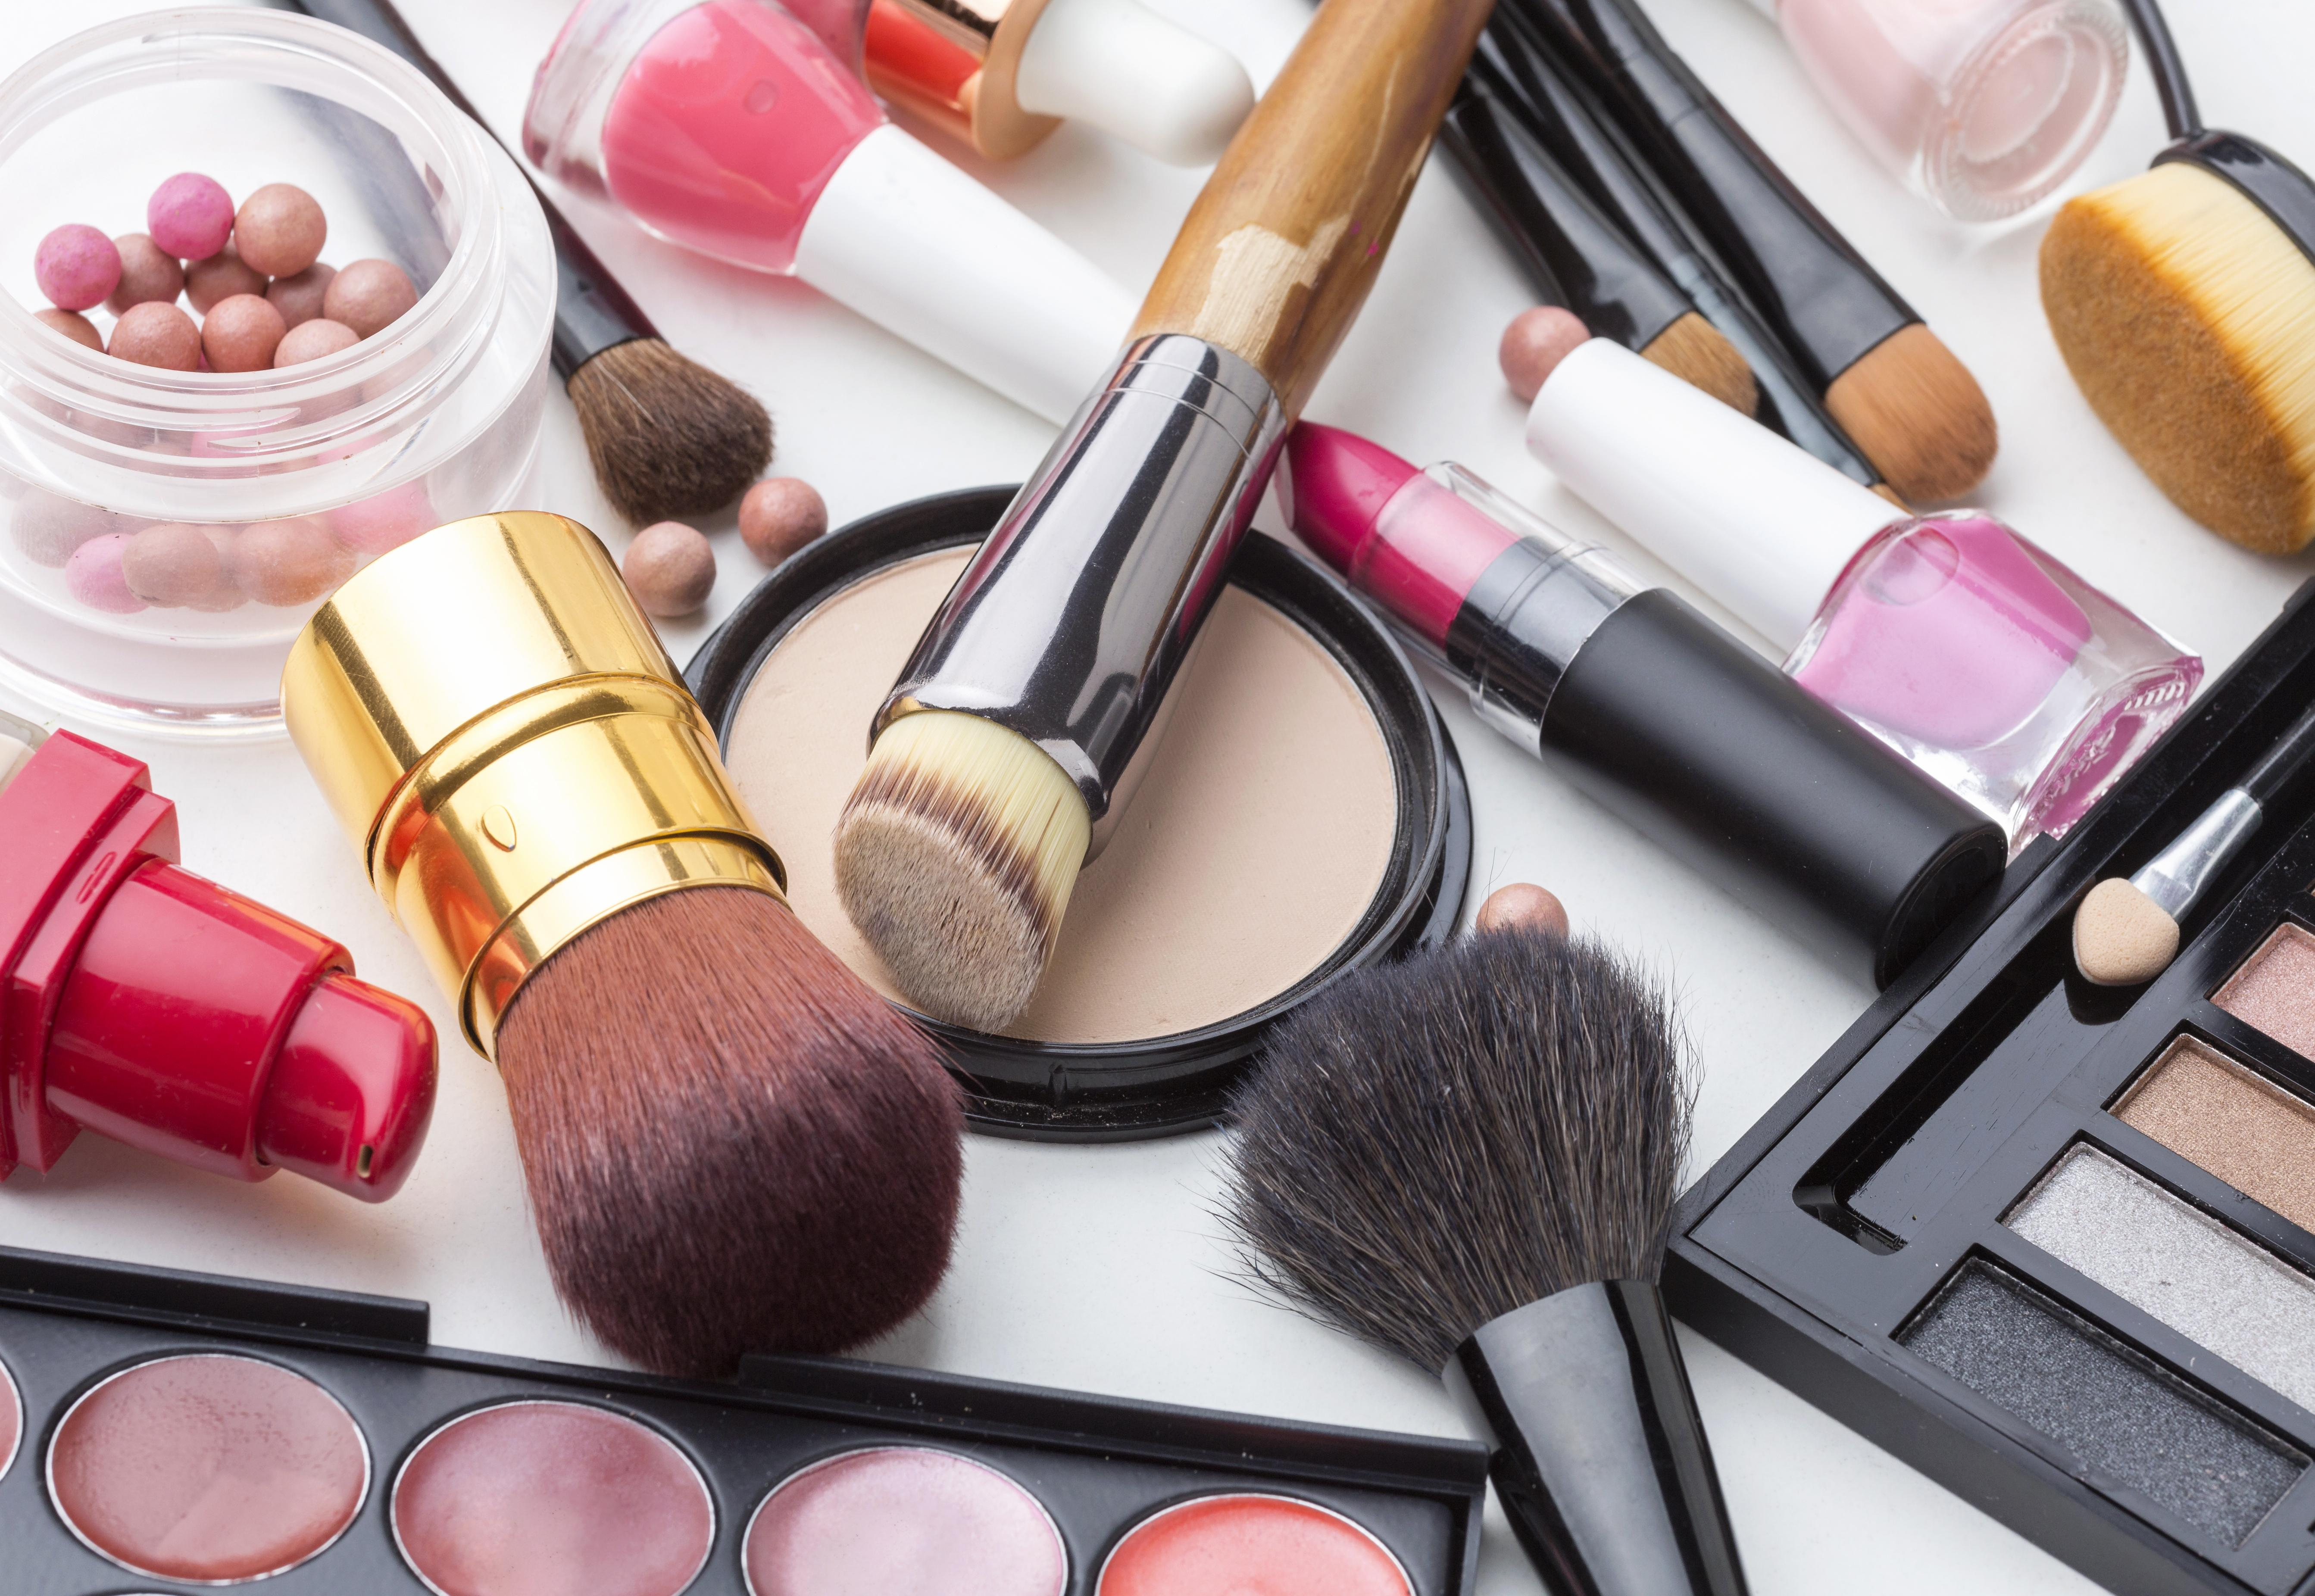 close-up-collection-of-make-up-and-beauty-products